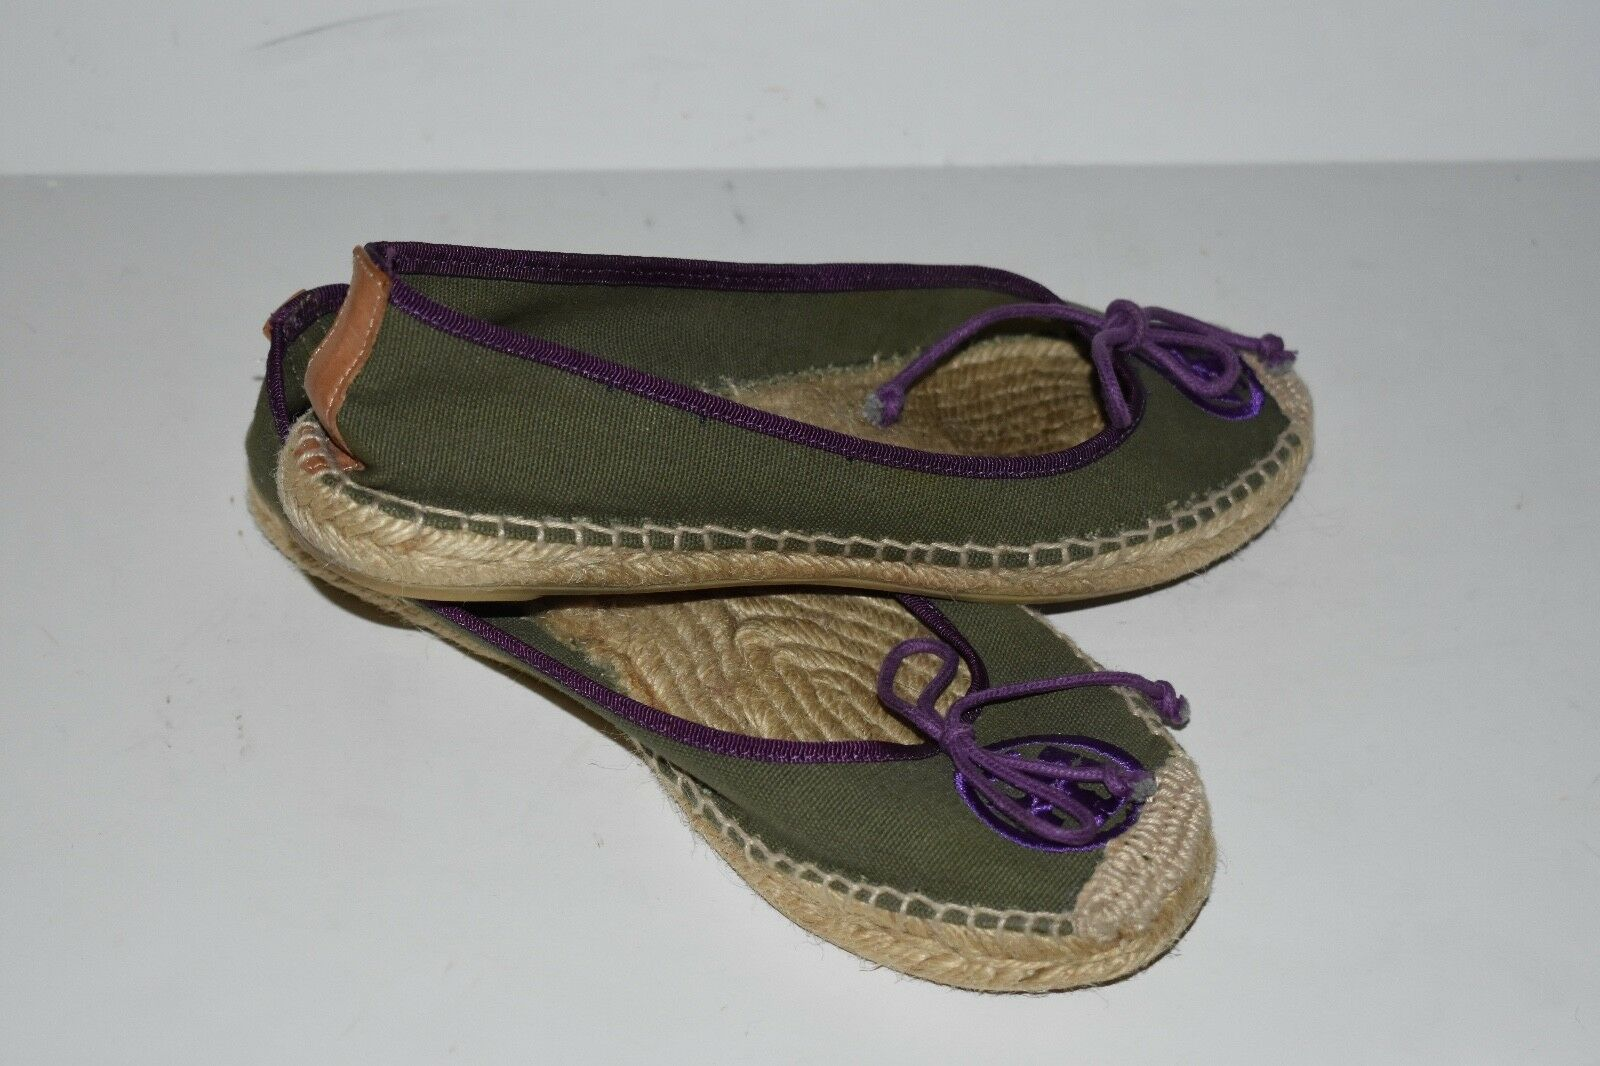 Tory Burch Espadrille Espadrille Espadrille Slip On shoes Flats Size 6 00b595